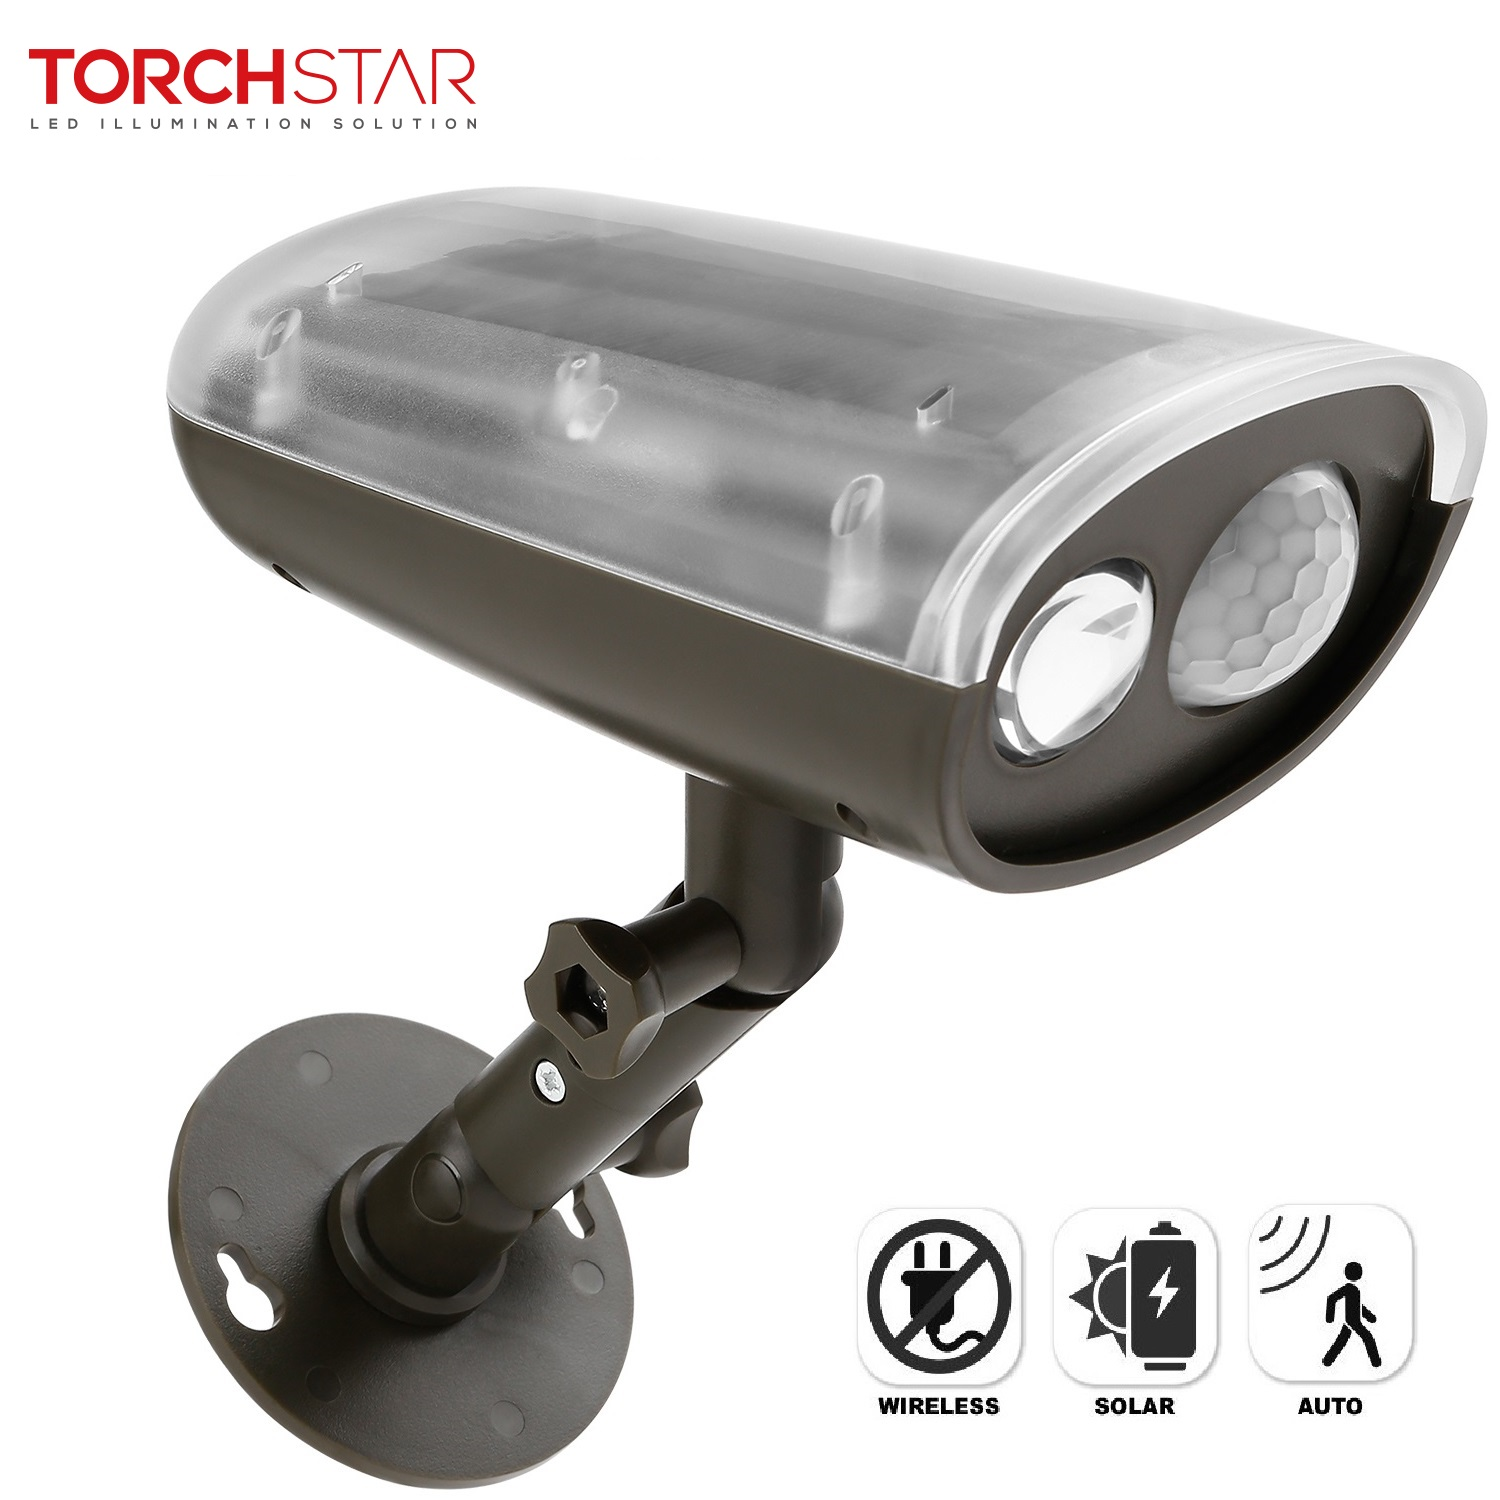 Led Solar Torchstar Led Solar Powered Outdoor Security Light With Motion Sensor Waterproof Wireless Solar Wall Lights